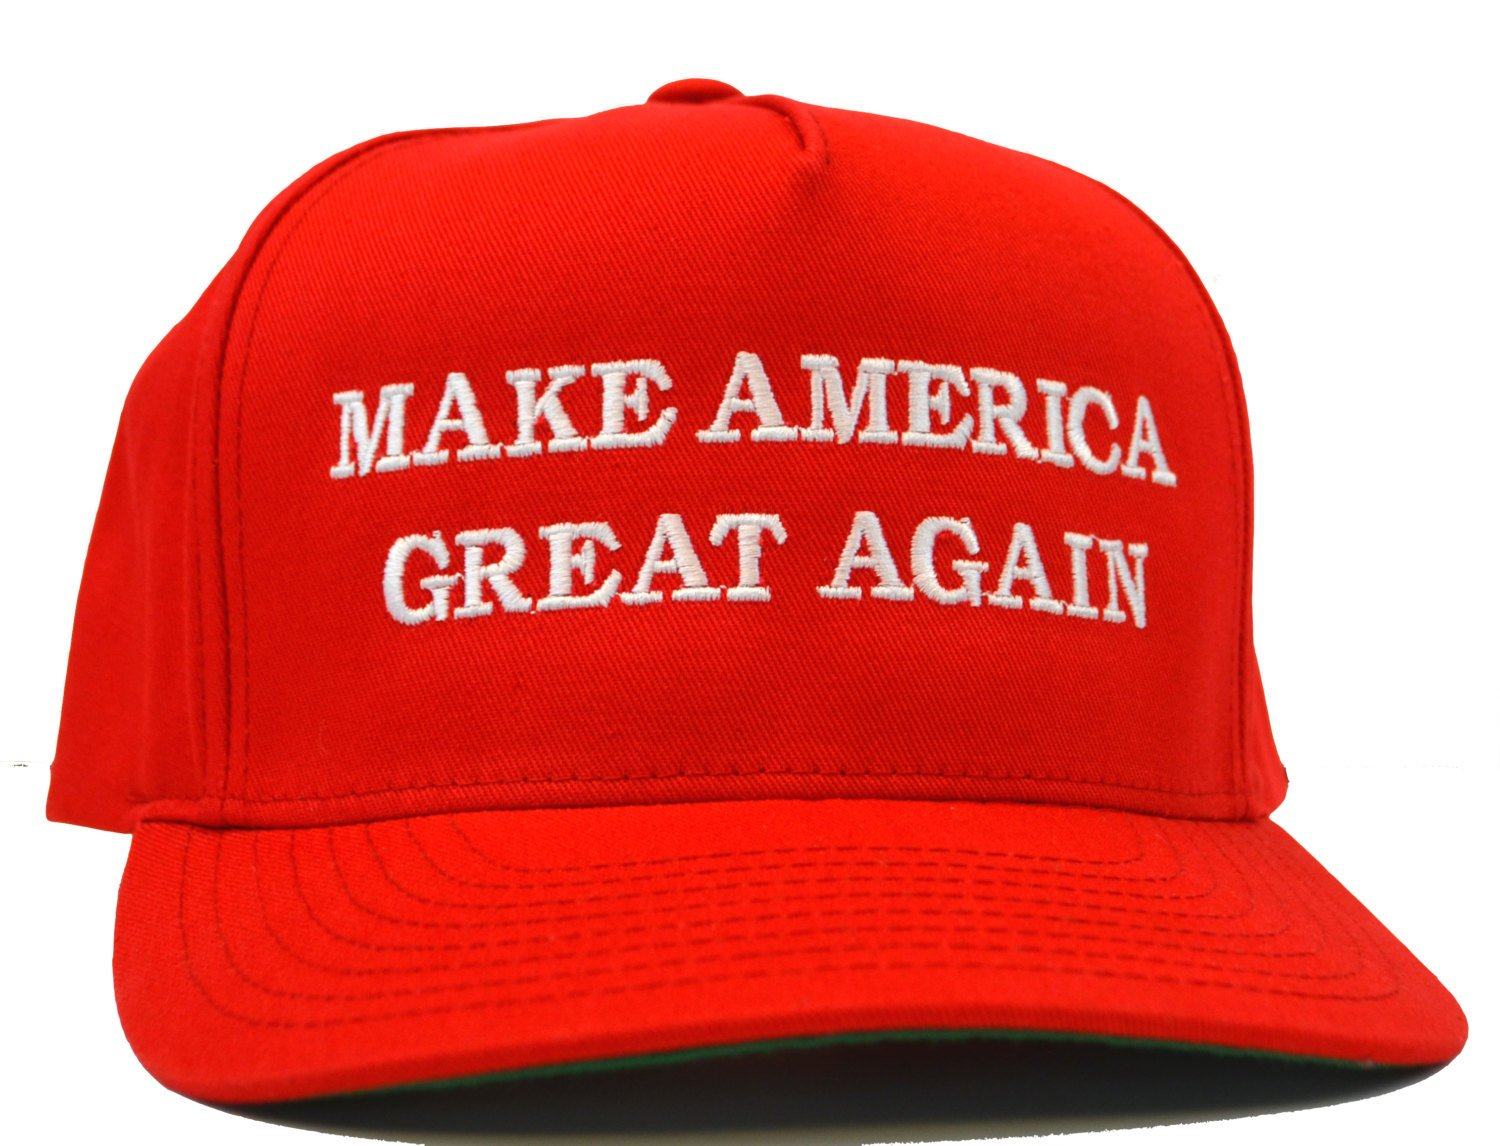 9343144c4fab0 Donald Trump Make America Great Again MAGA Hat Cap Election 2017 ...